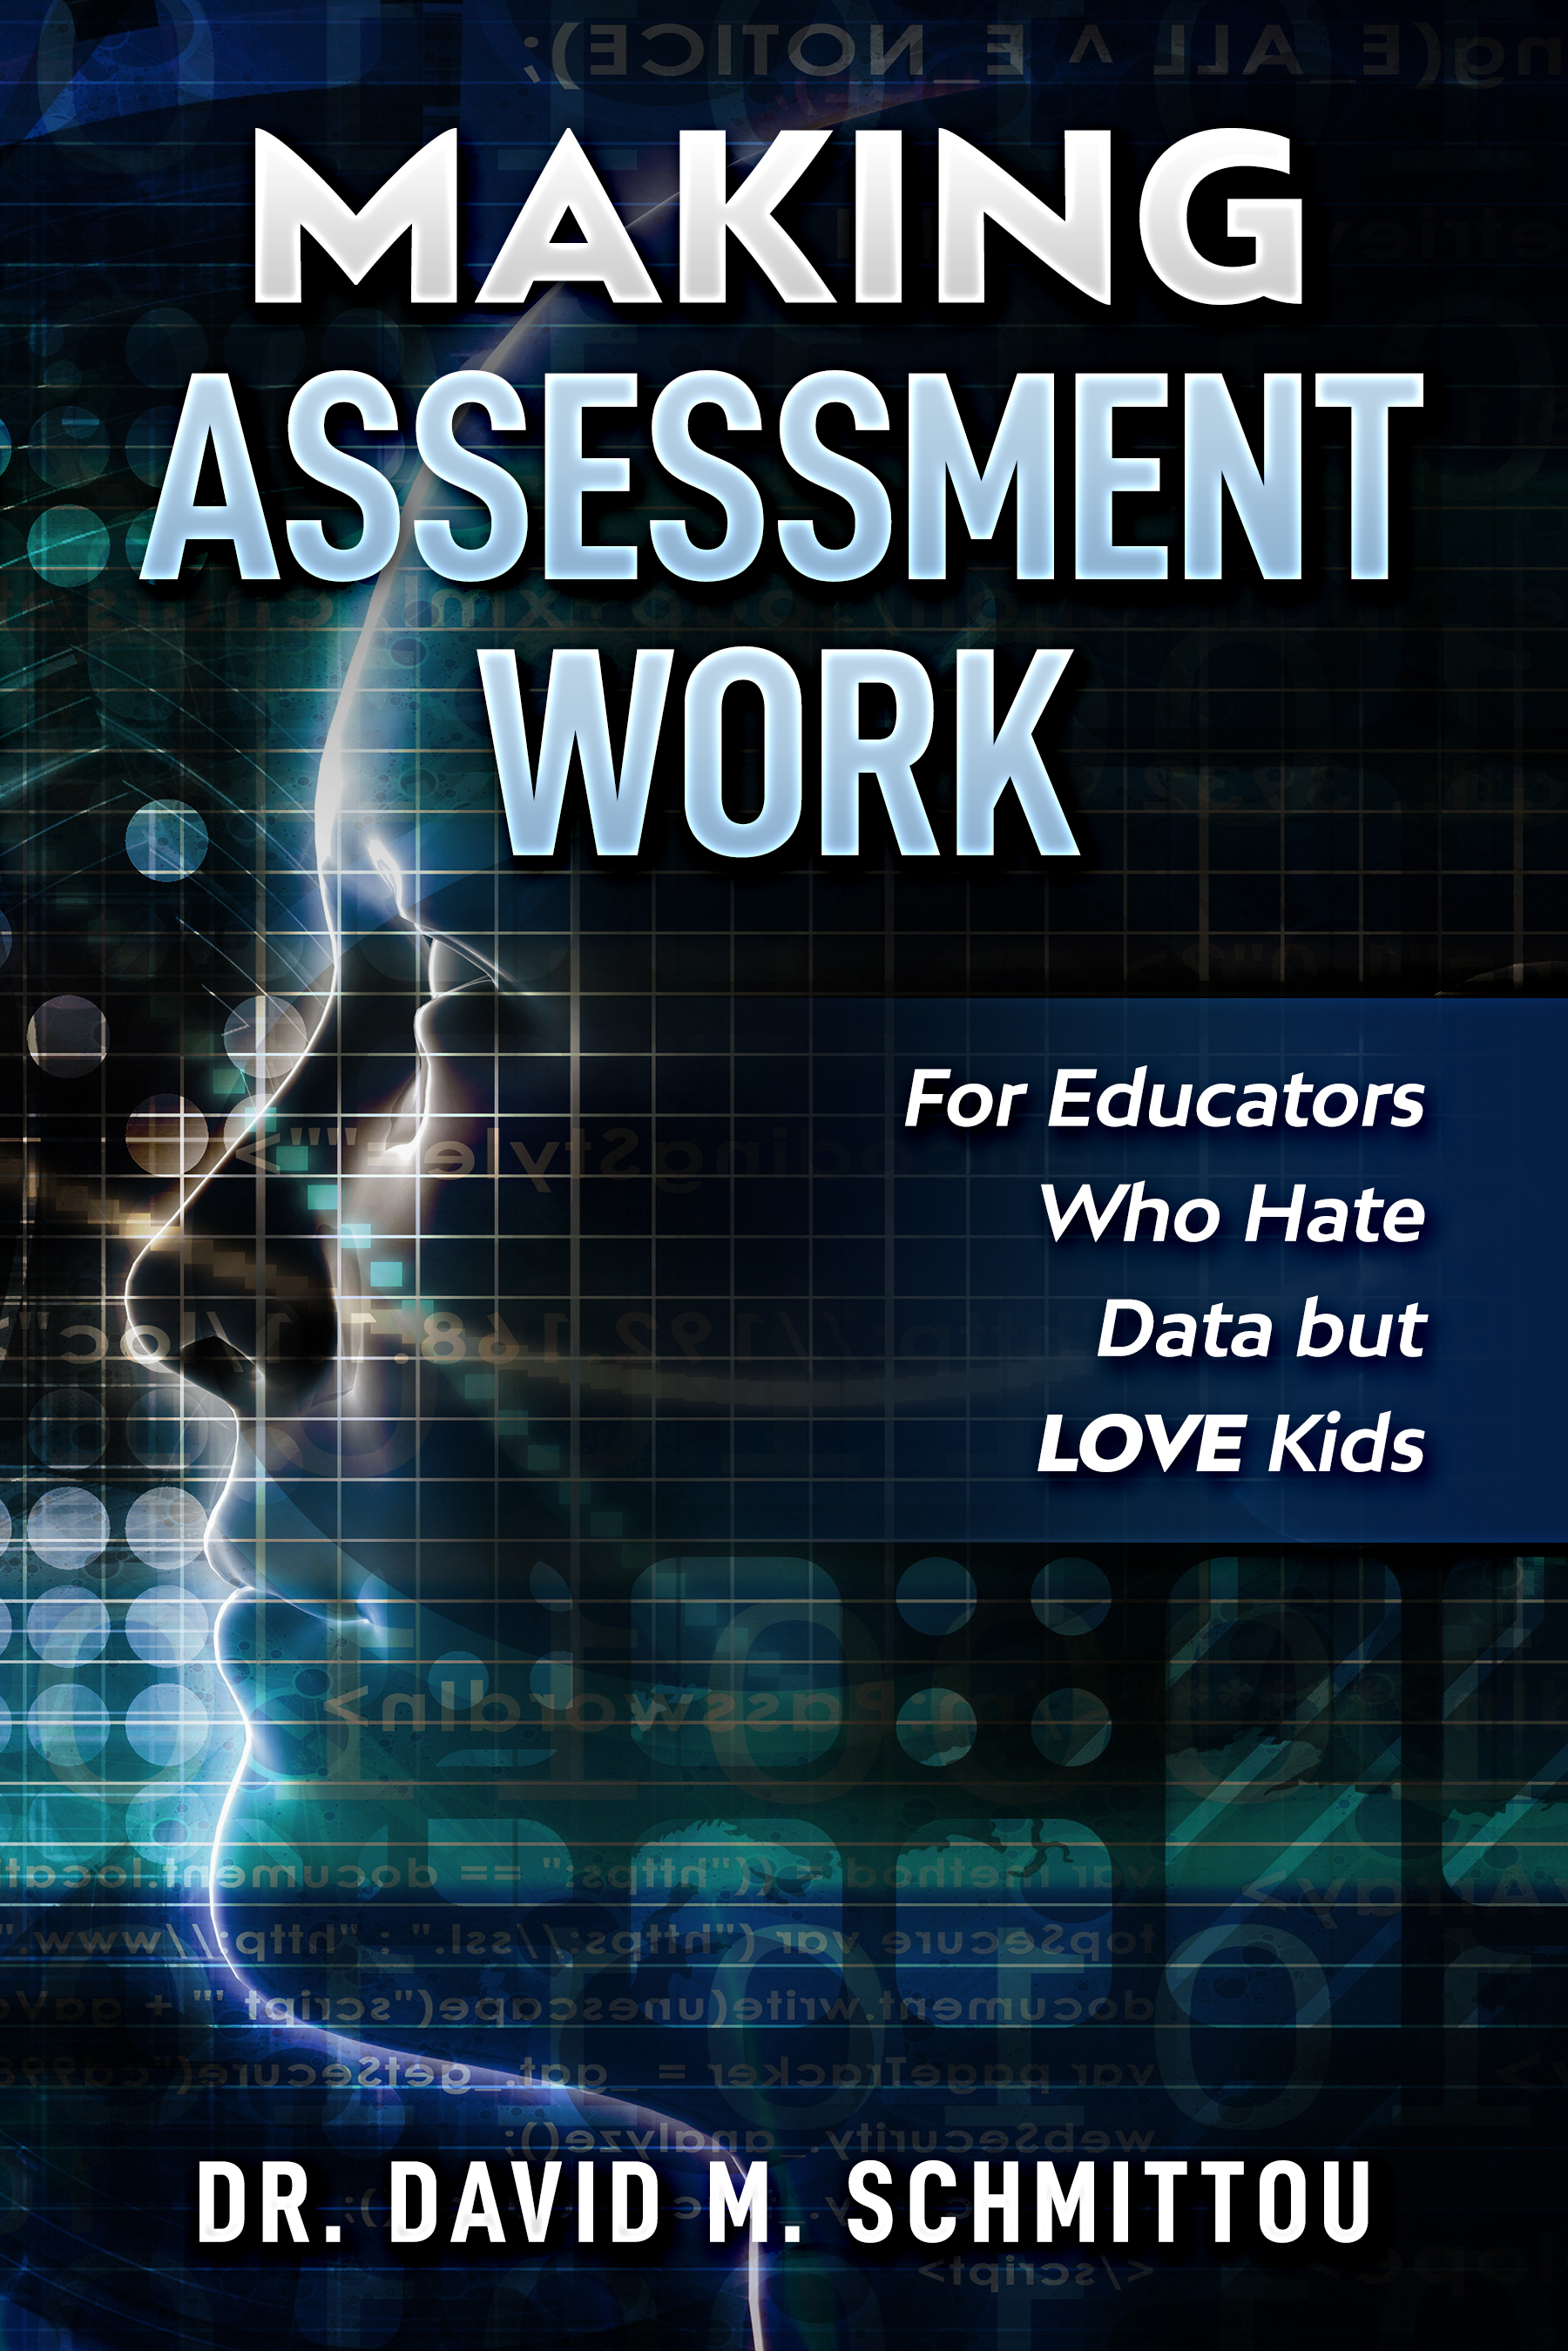 Making Assessment Work by Dr. David M. Schmittou